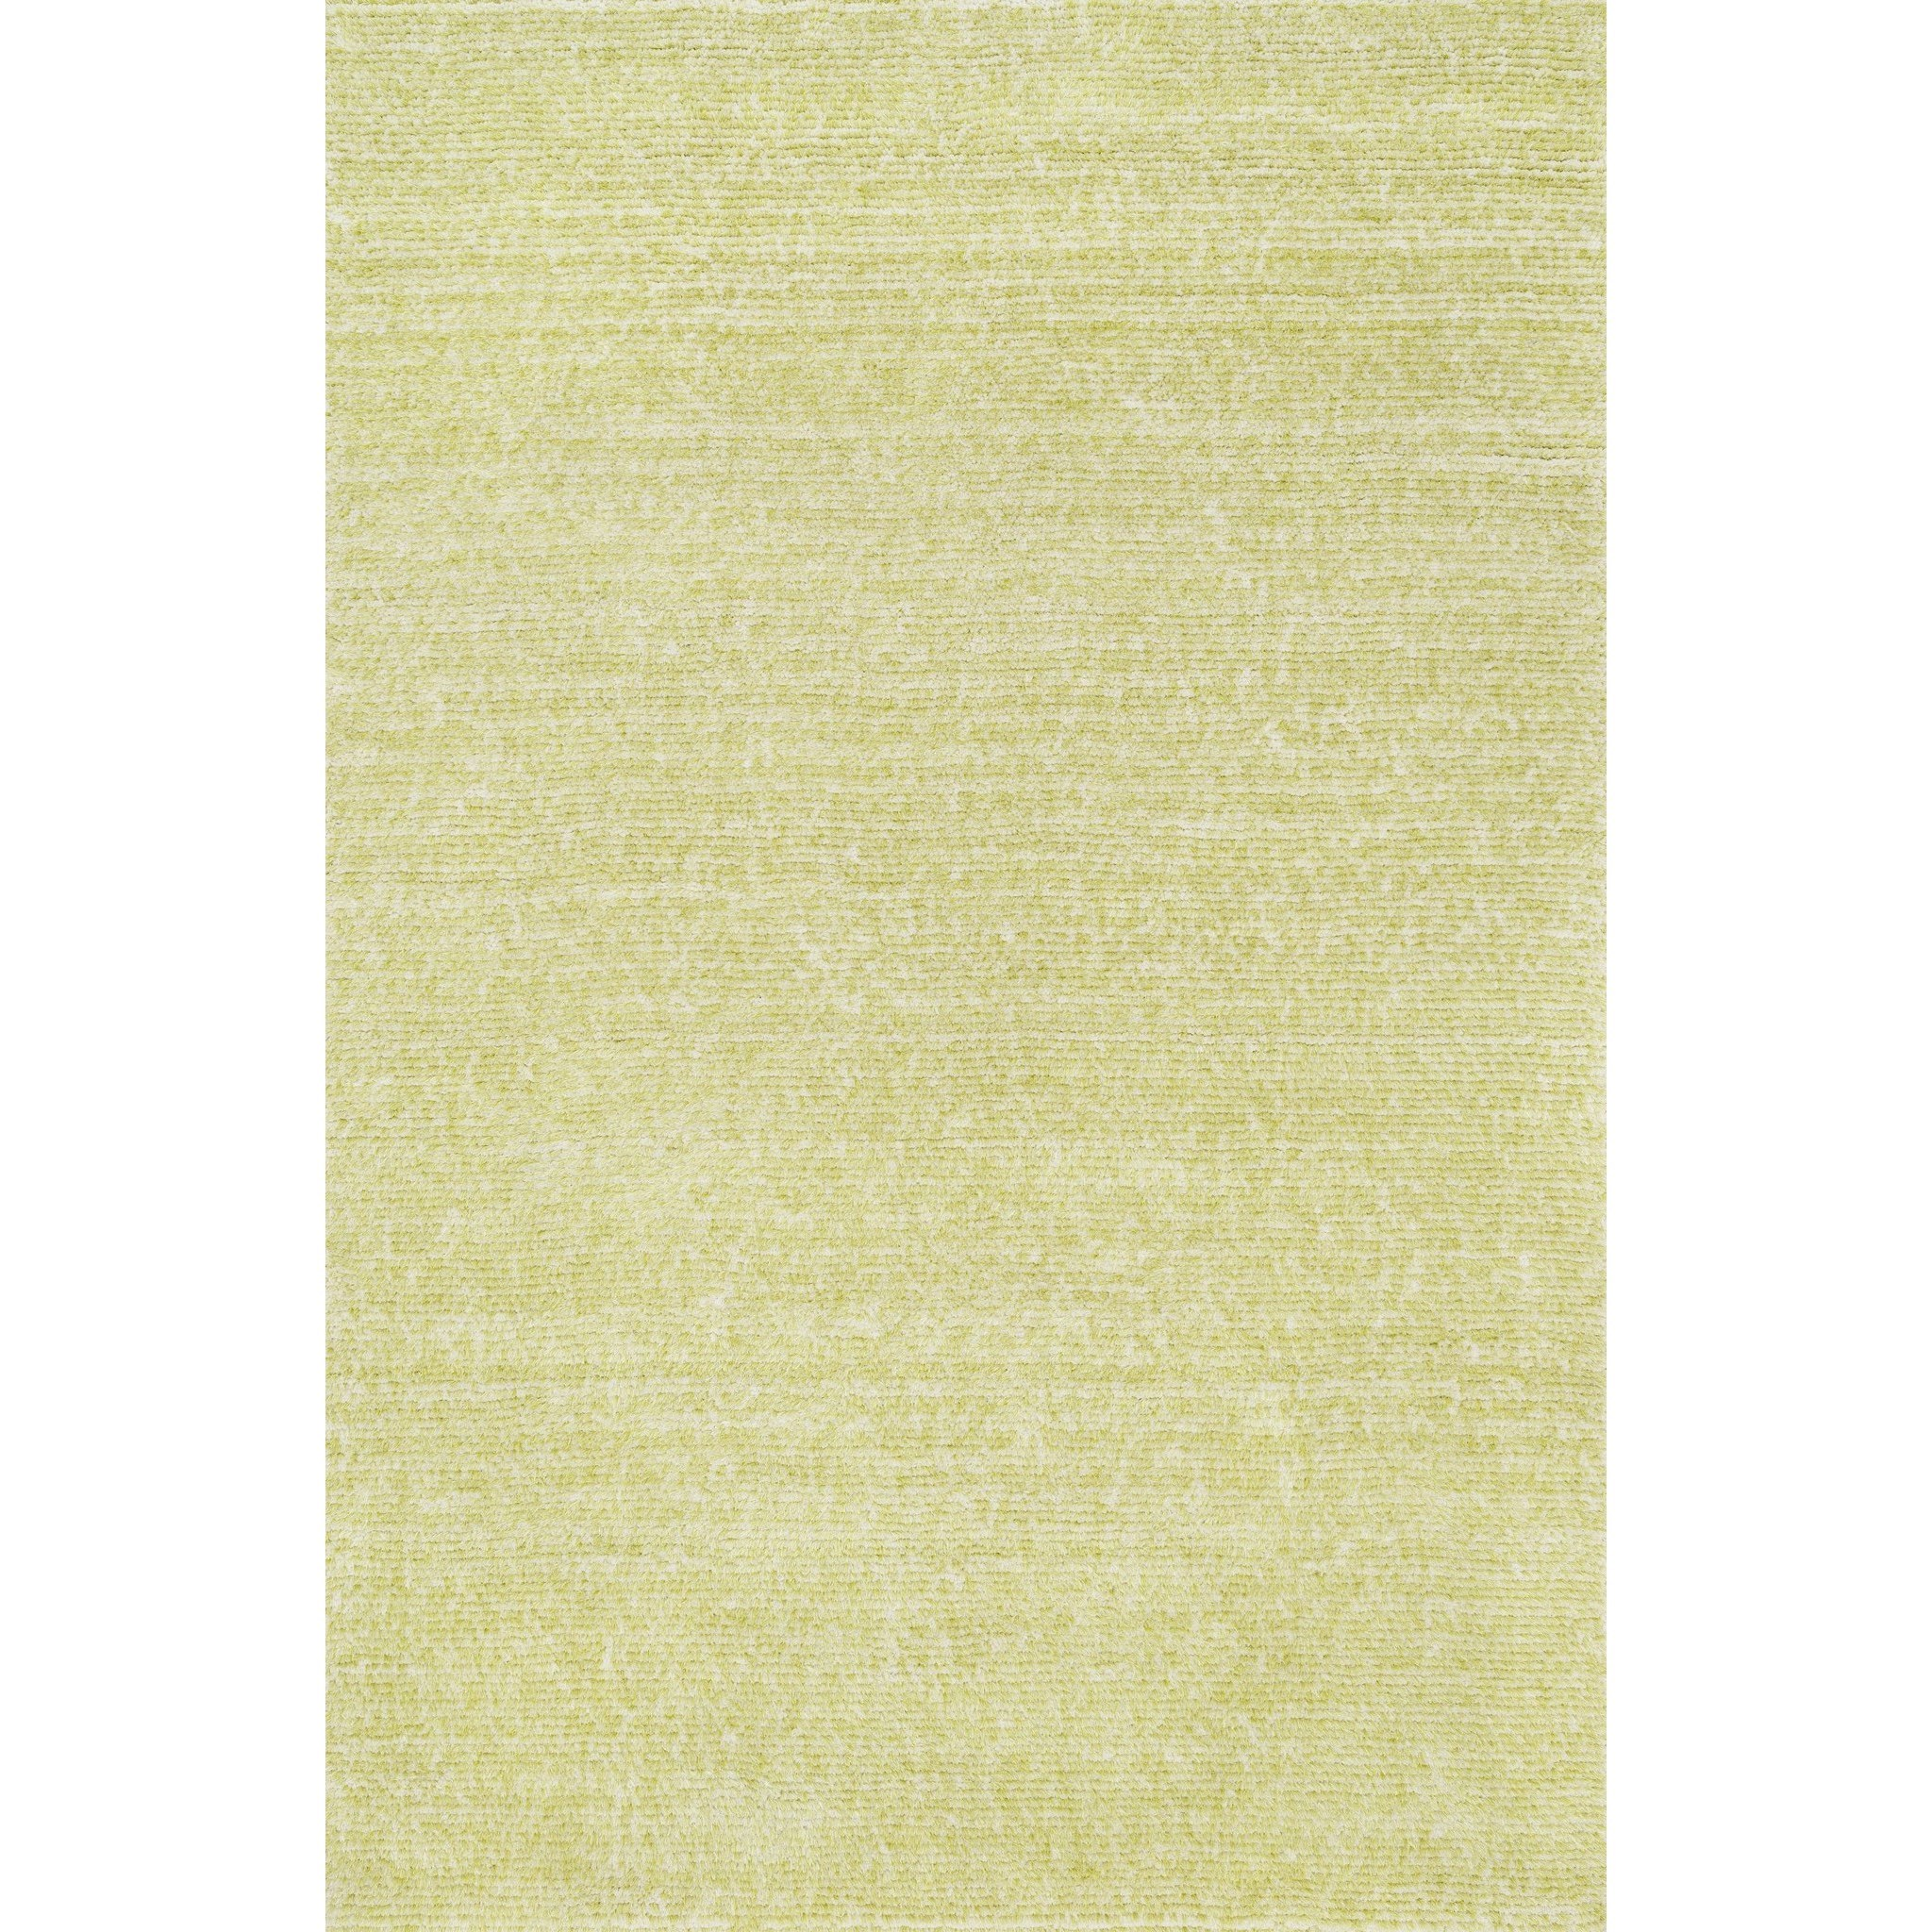 """Happy Shag 9'-3"""" X 13' Area Rug by Loloi Rugs at Virginia Furniture Market"""